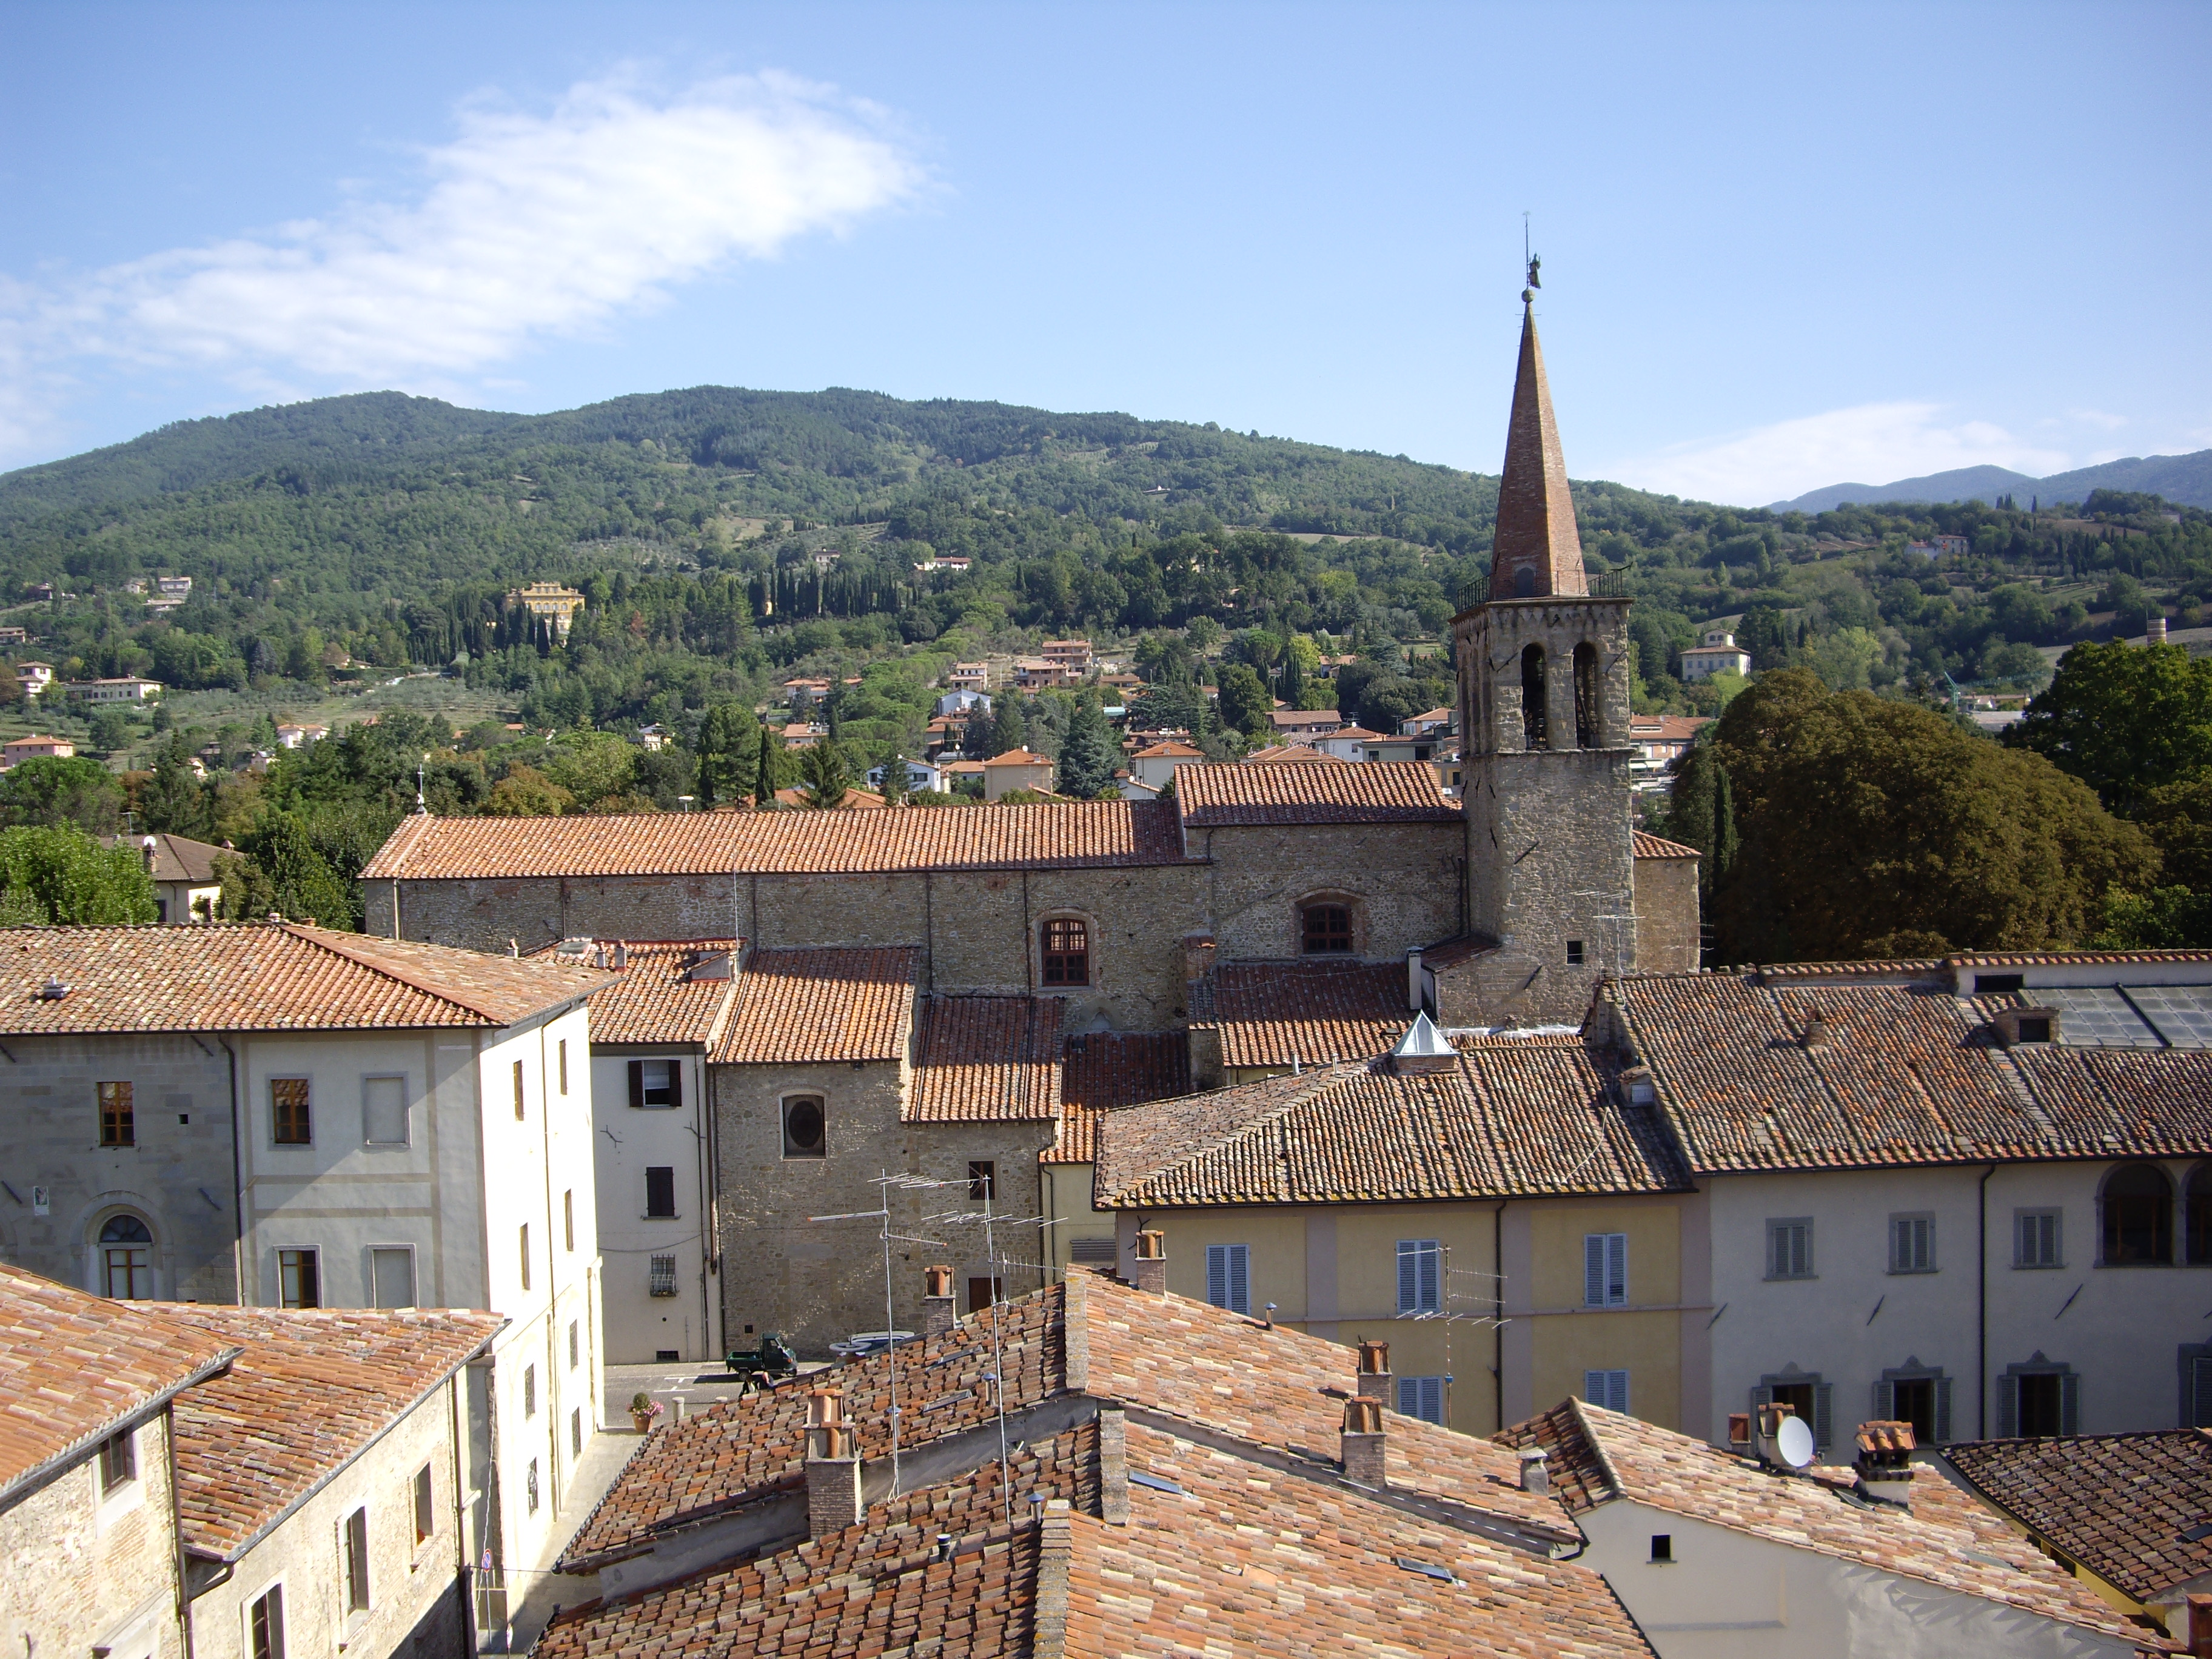 Sansepolcro Italy  City new picture : Sansepolcro roofs with church steeple Wikimedia Commons